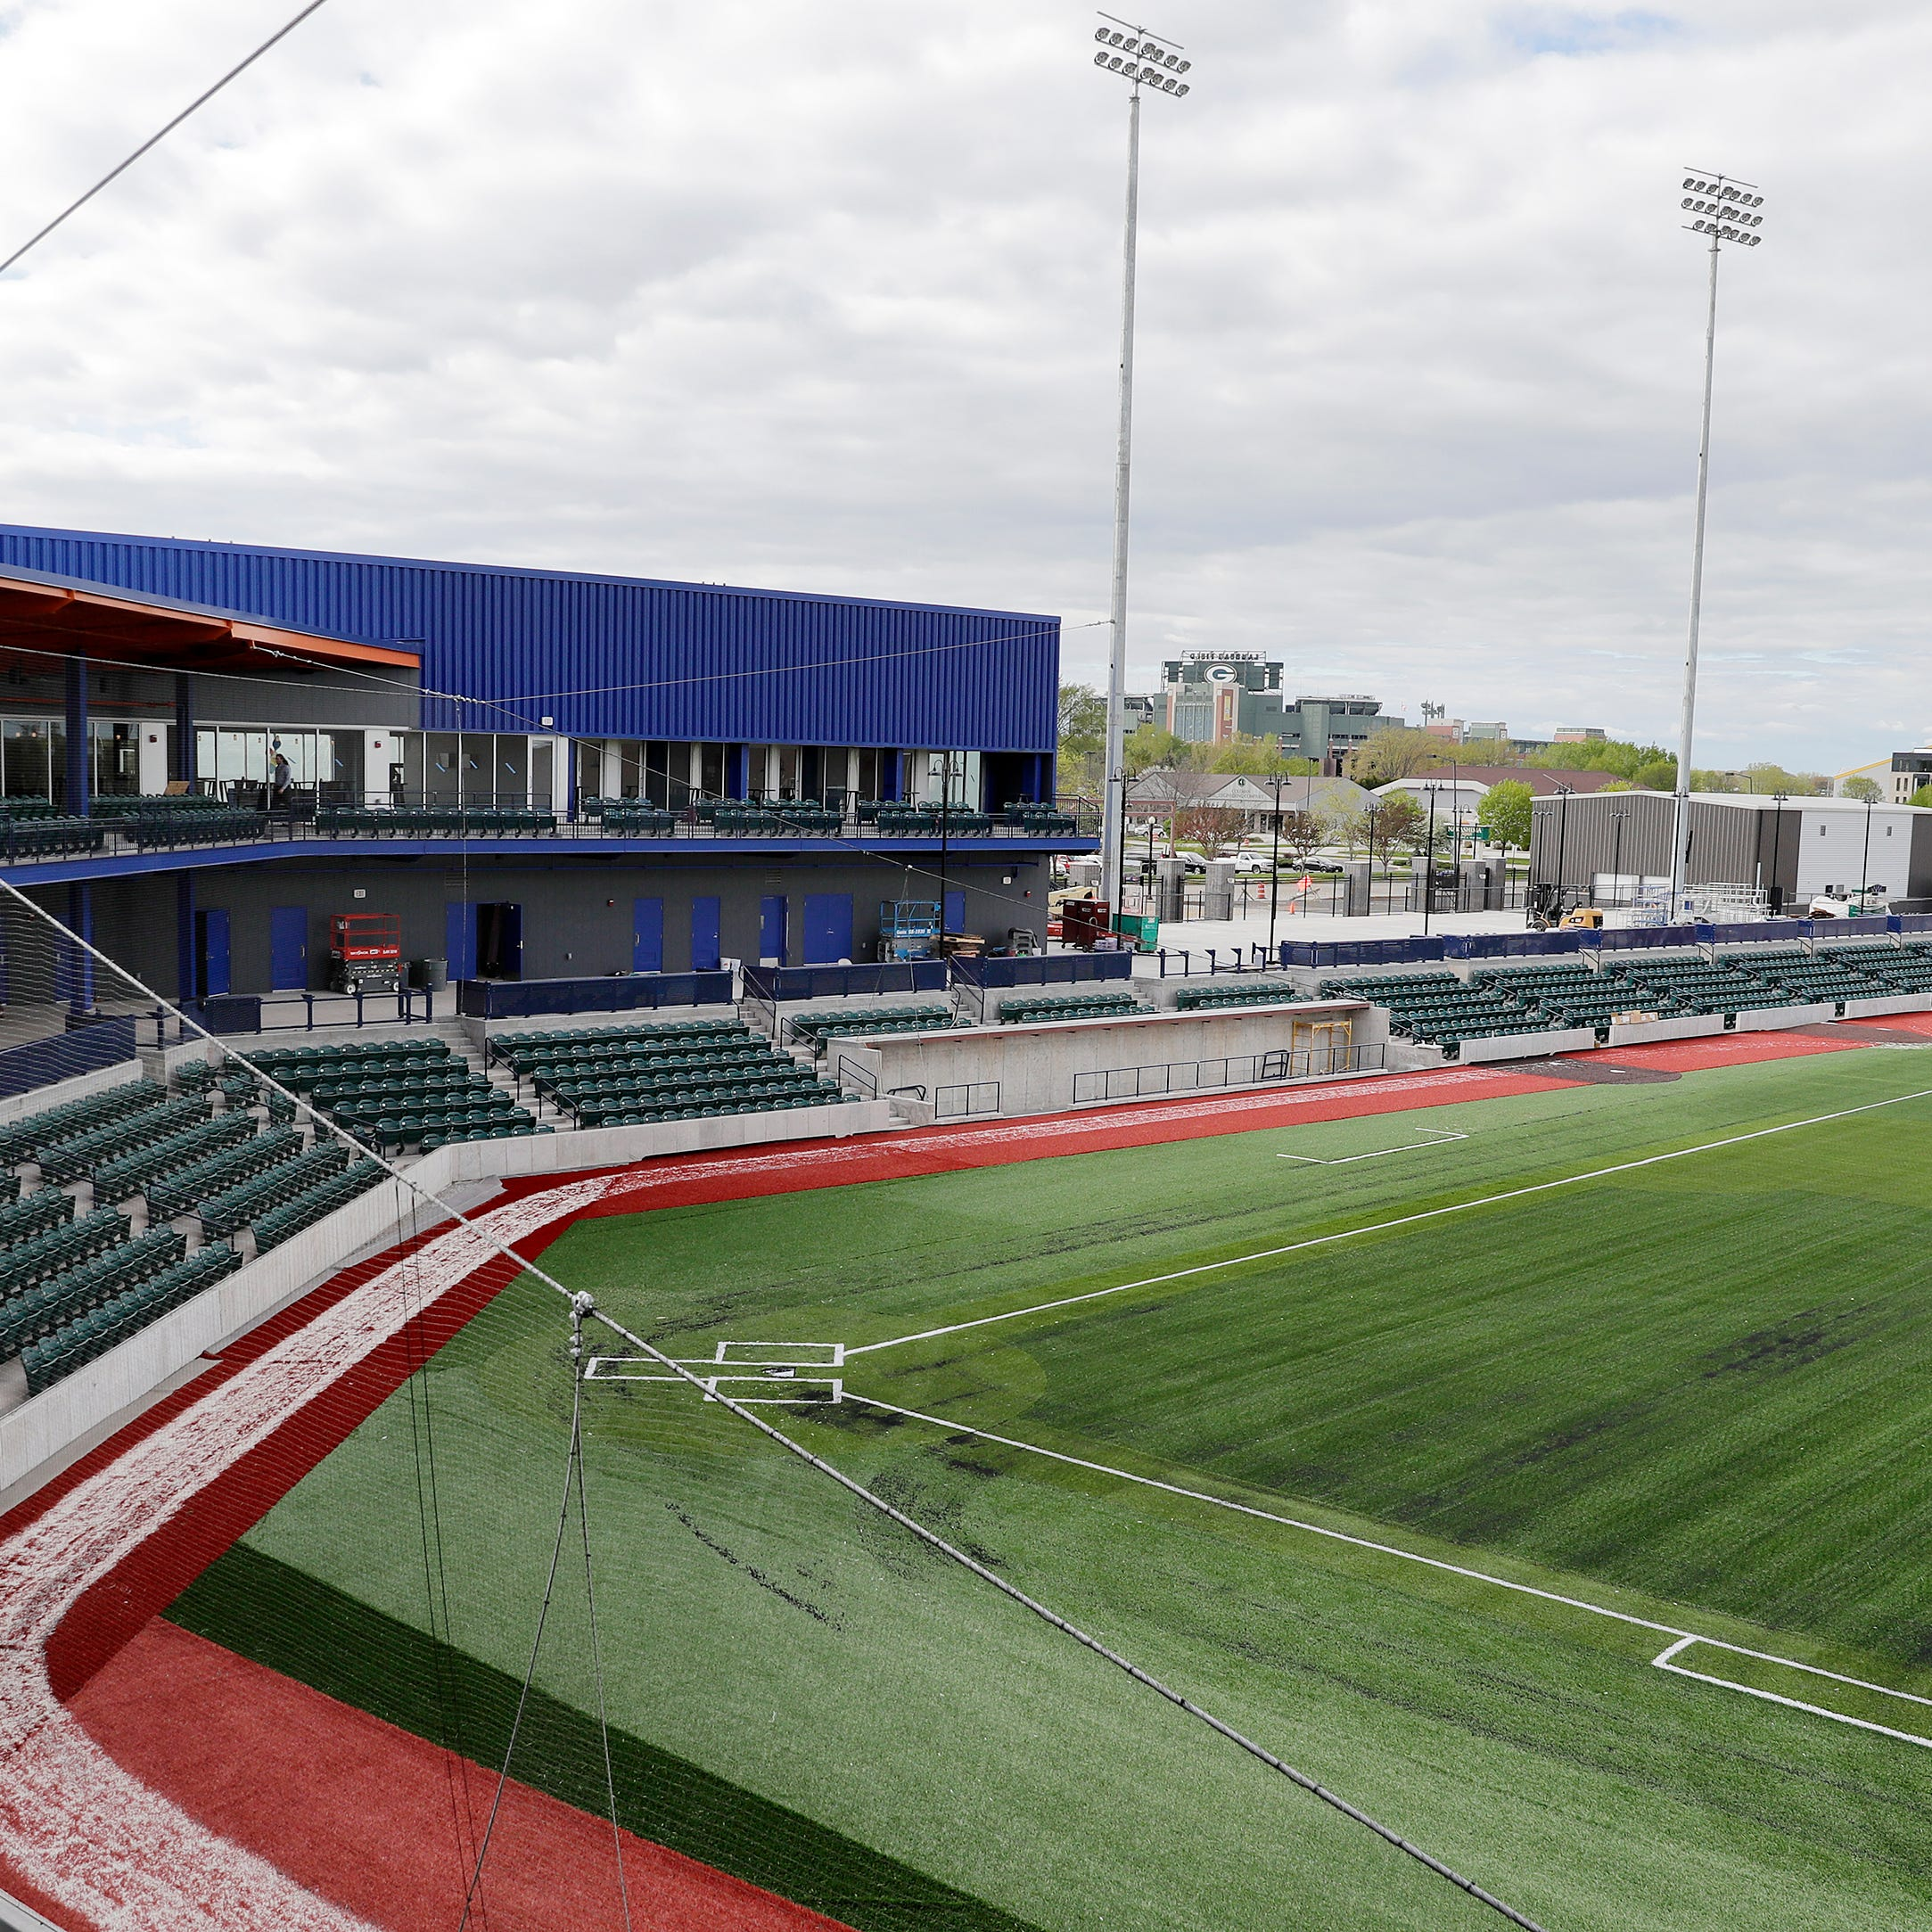 Fever pitch: New name, sport, stadium have Booyah, Voyageurs excited to start